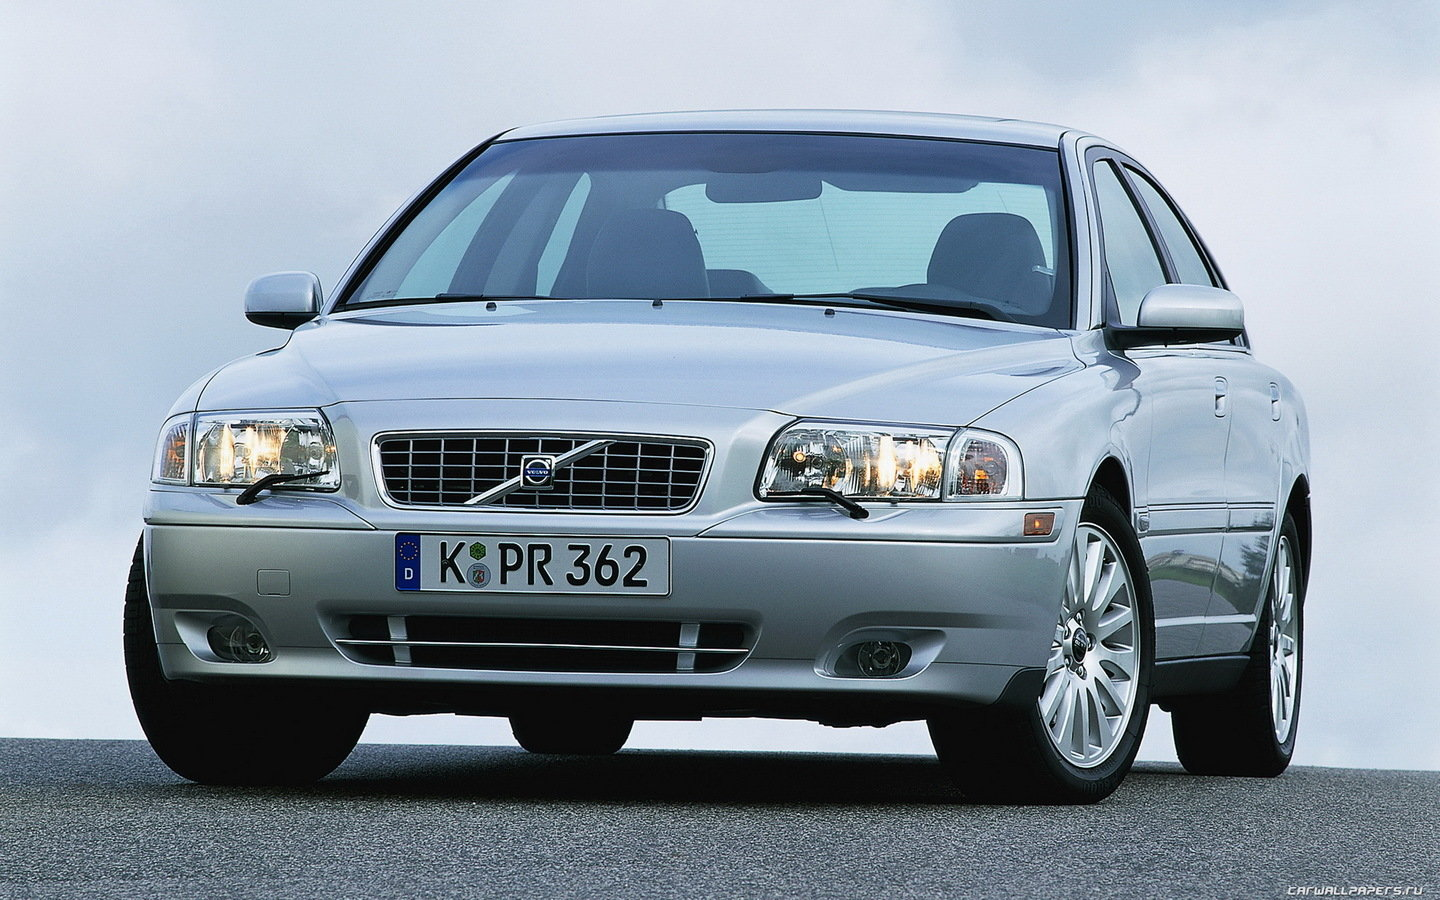 Volvo S80 2.9T B6294T AT 0261204559 30641531A 00NCHJ.a2l